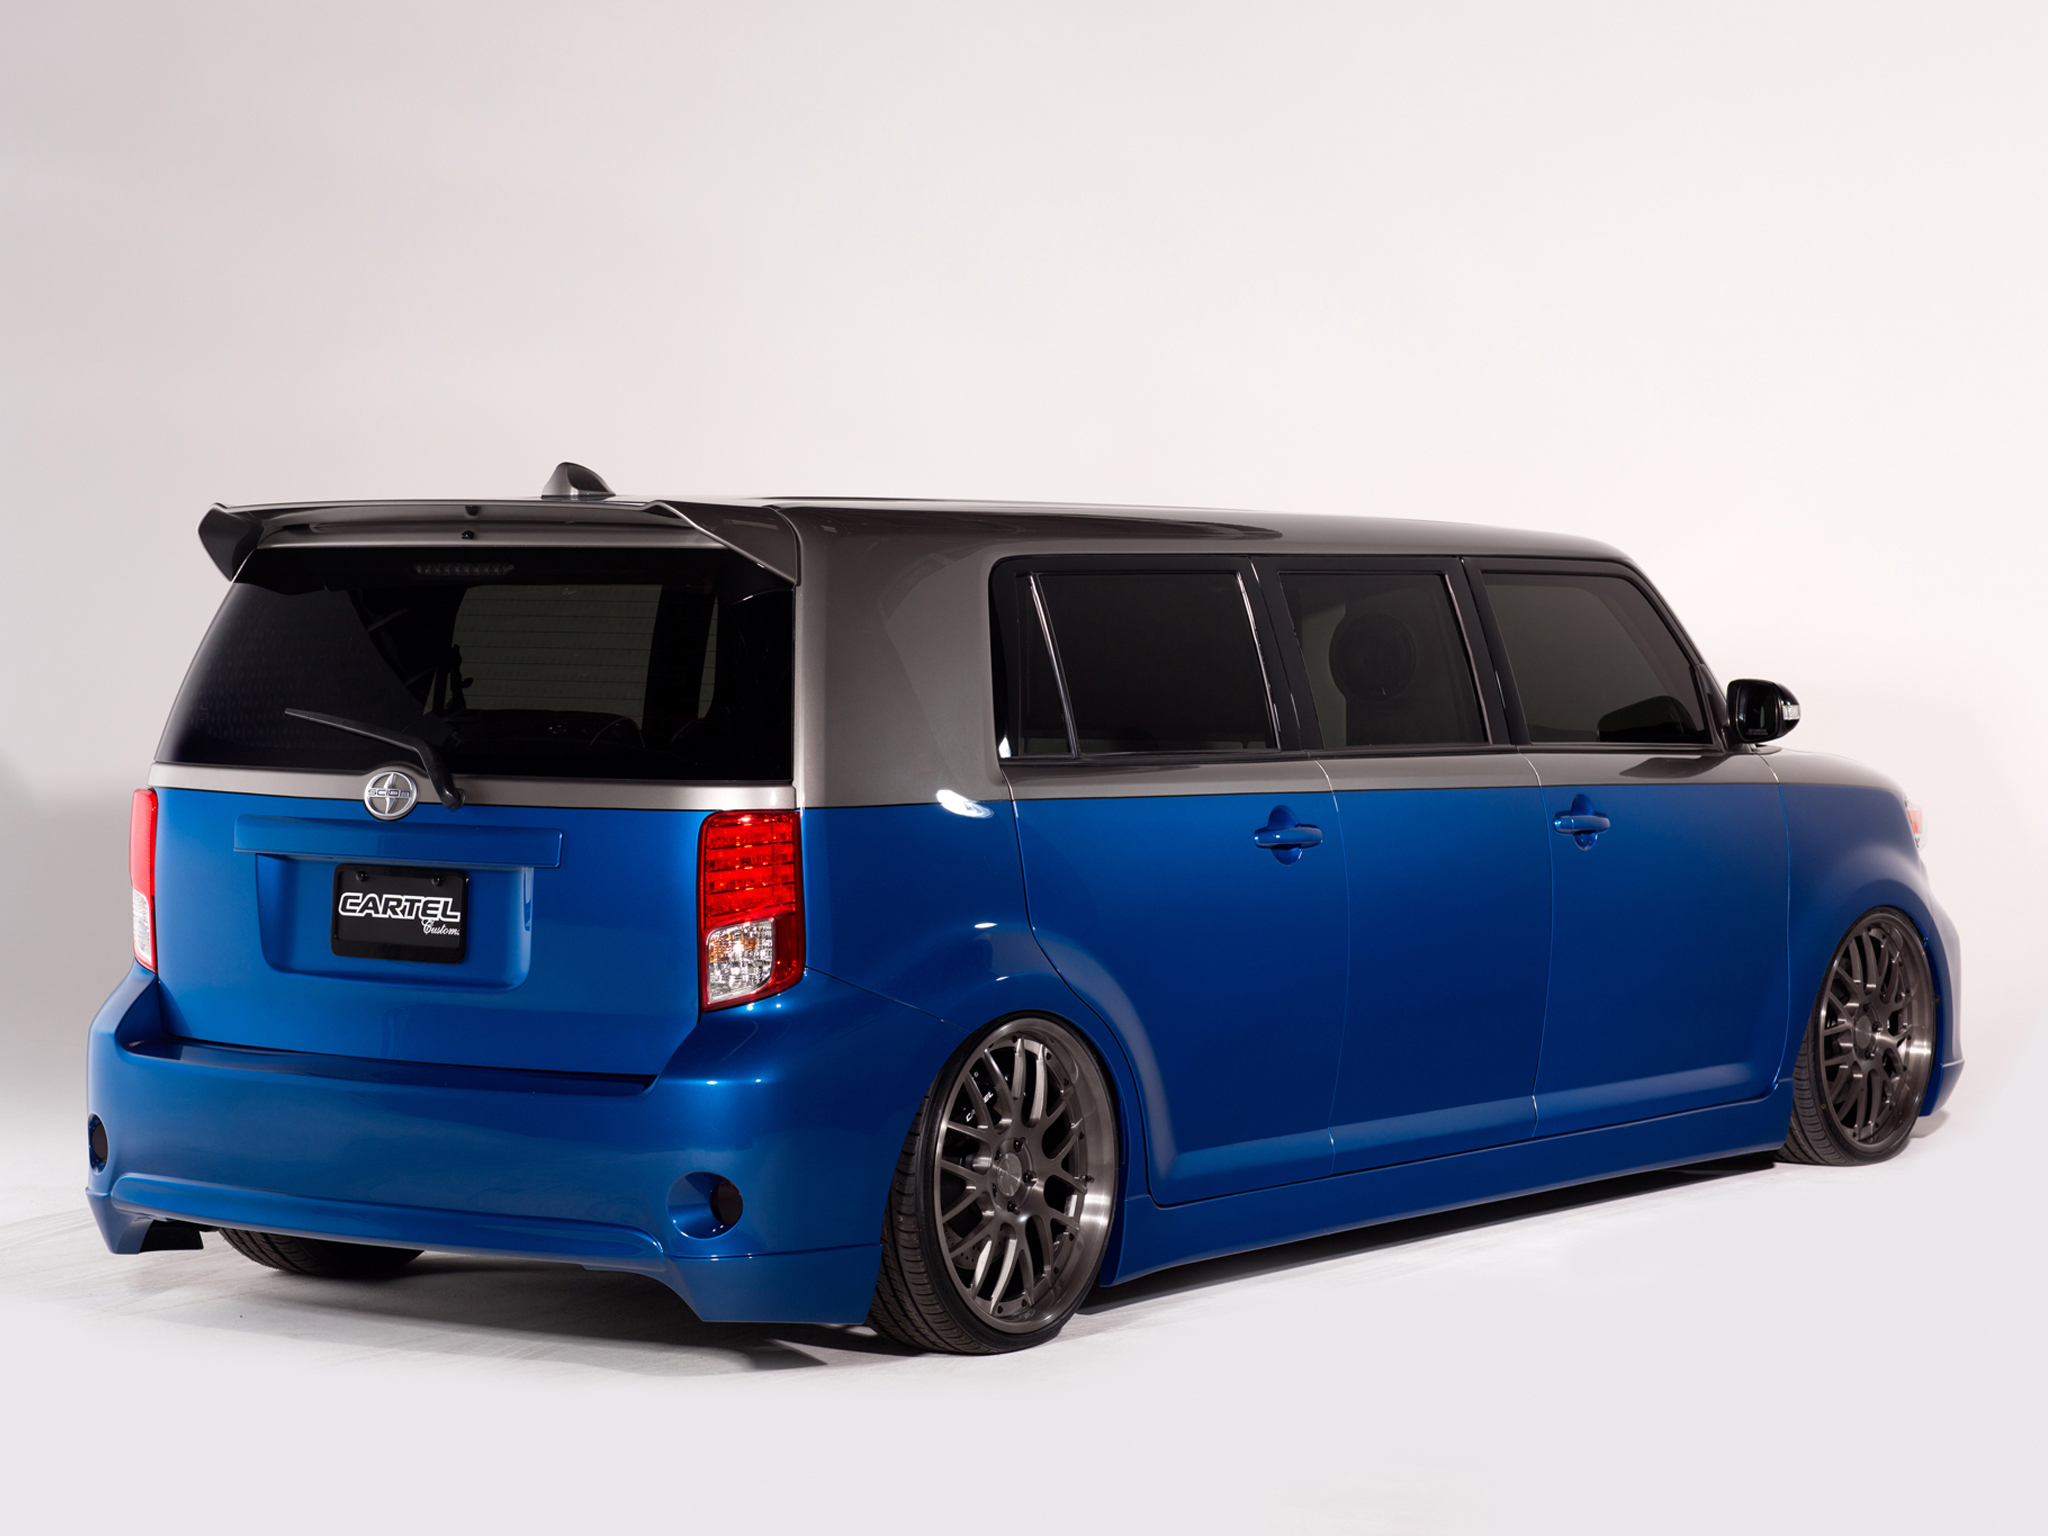 2014 scion xb strictly business cartel limousine tuning suv d wallpaper 2048x1536 168783. Black Bedroom Furniture Sets. Home Design Ideas